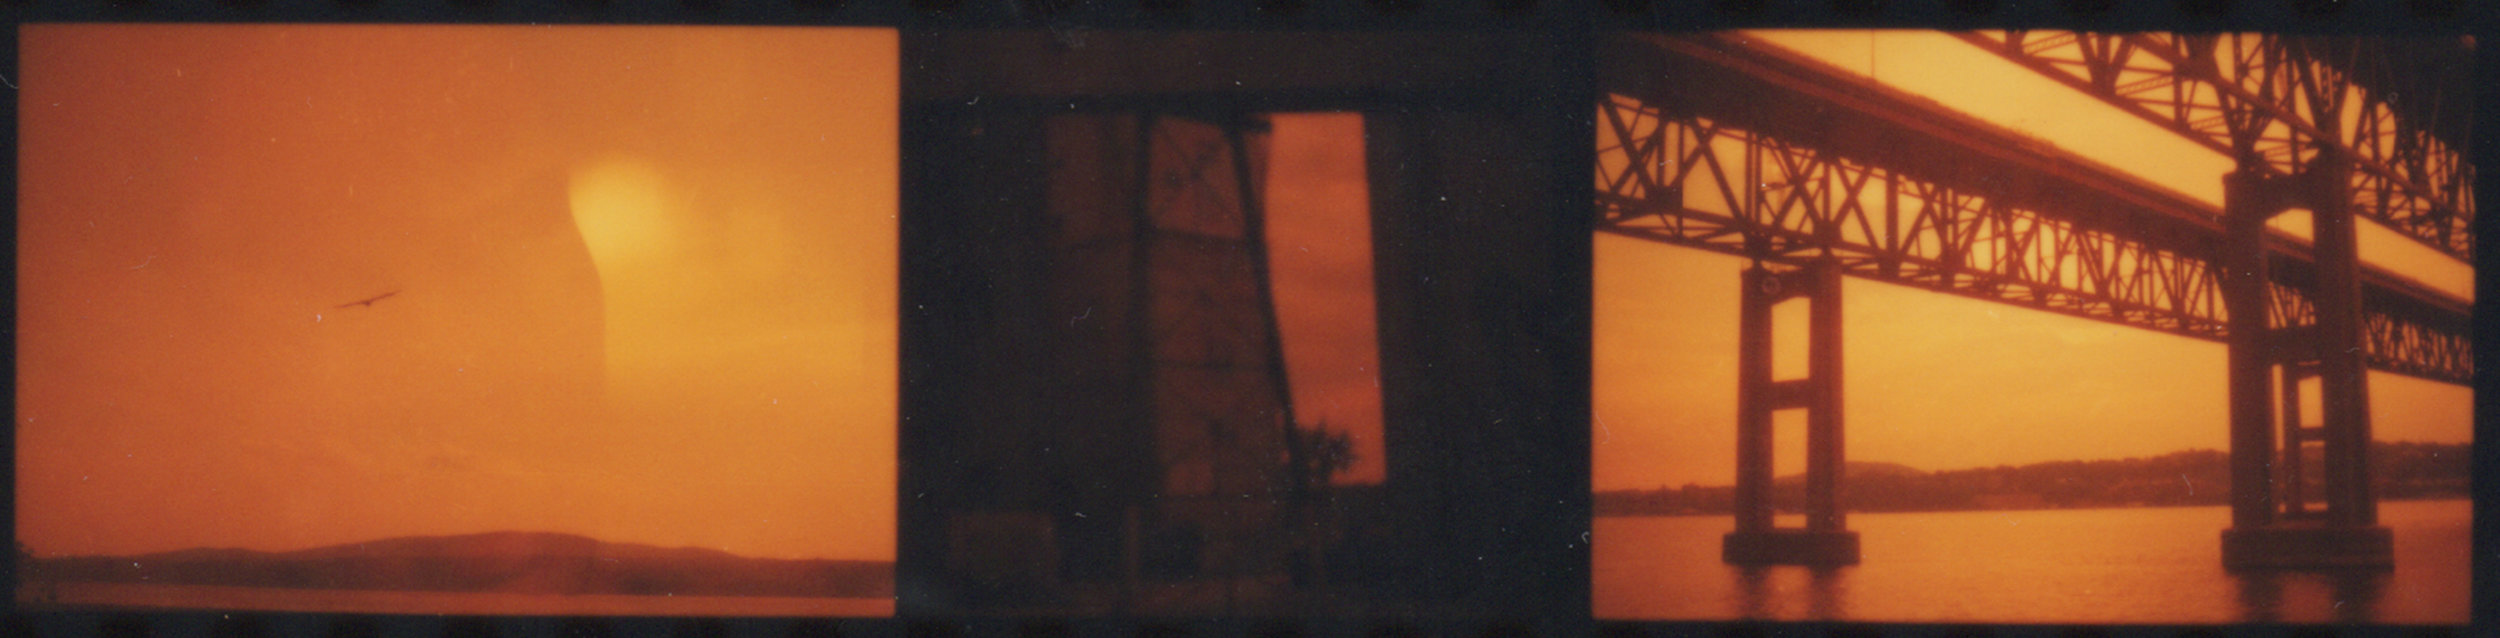 35mm red-scale negative